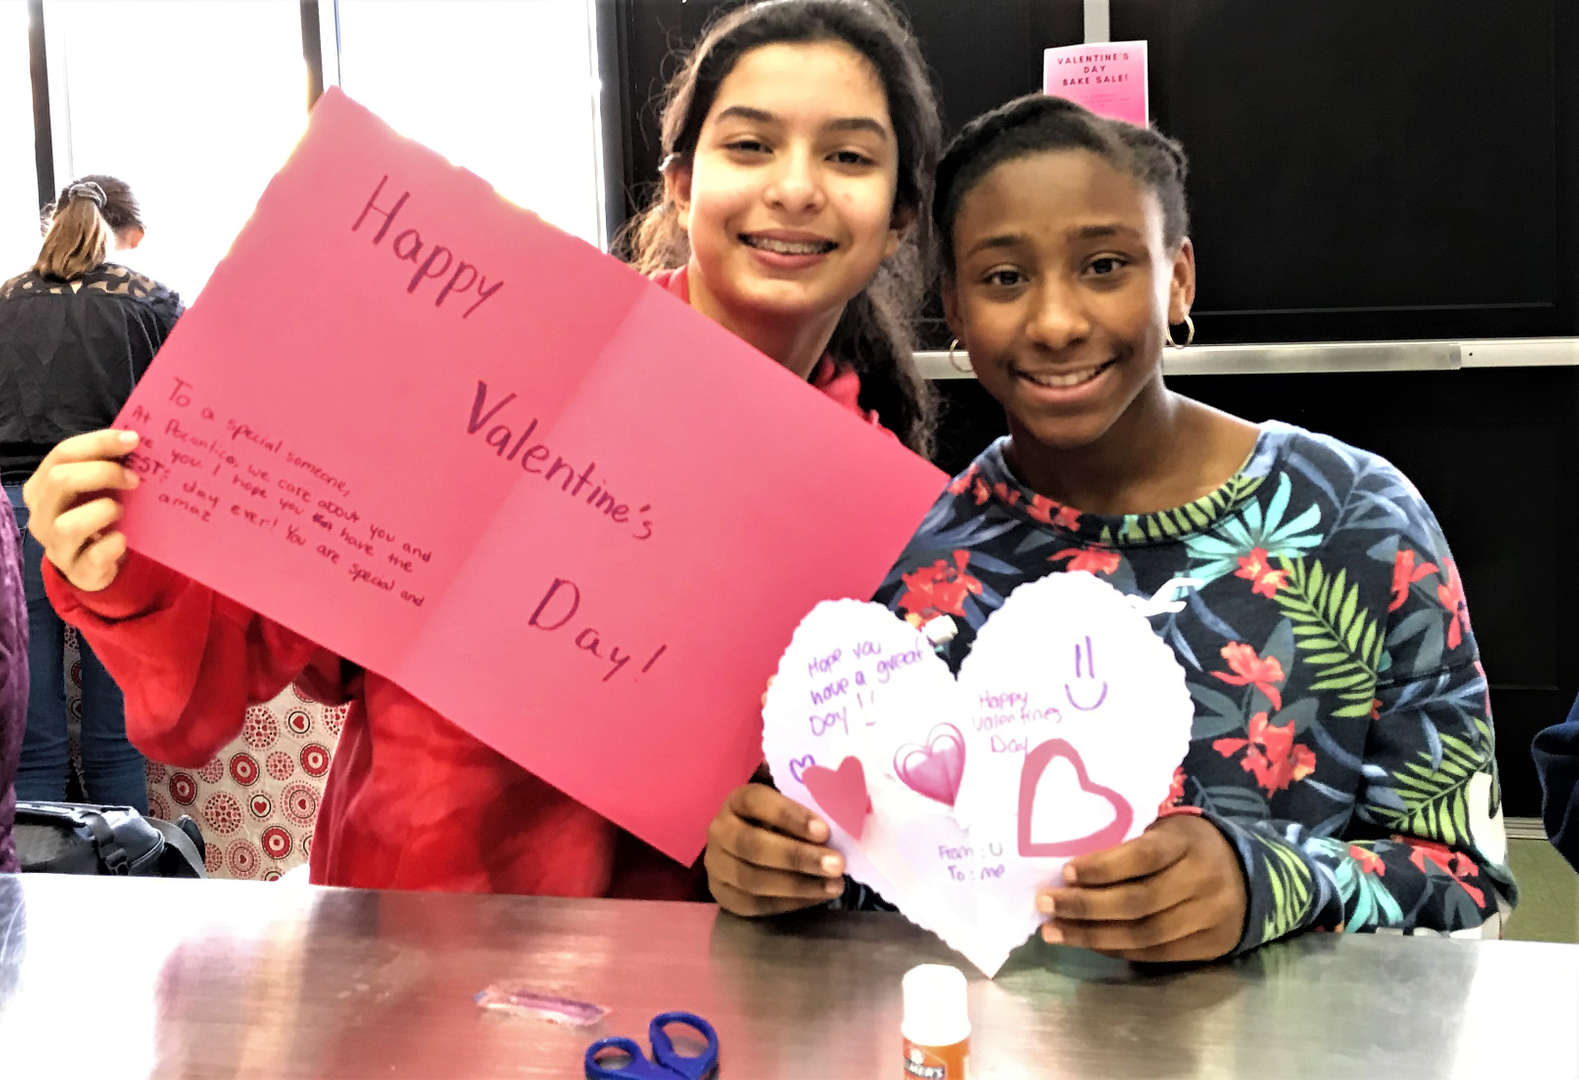 Two students display the Valentine's Day cards they made.